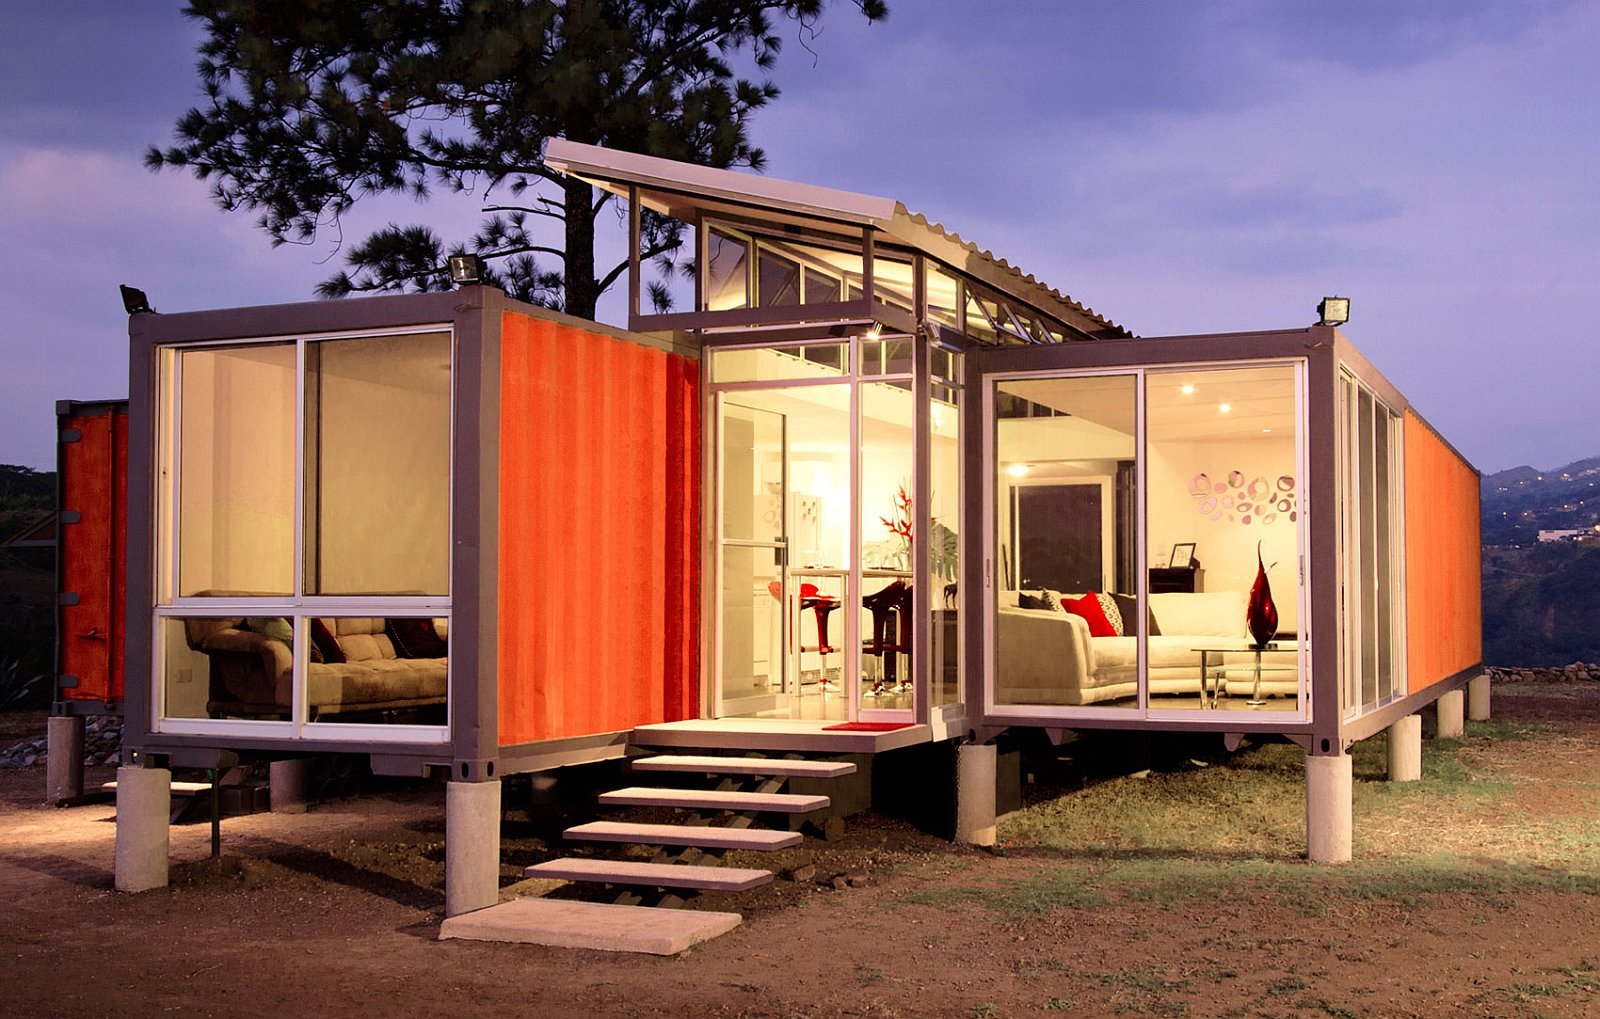 benjamin-garcia-saxe-containers-of-hope-exterior5-via-smallhousebliss